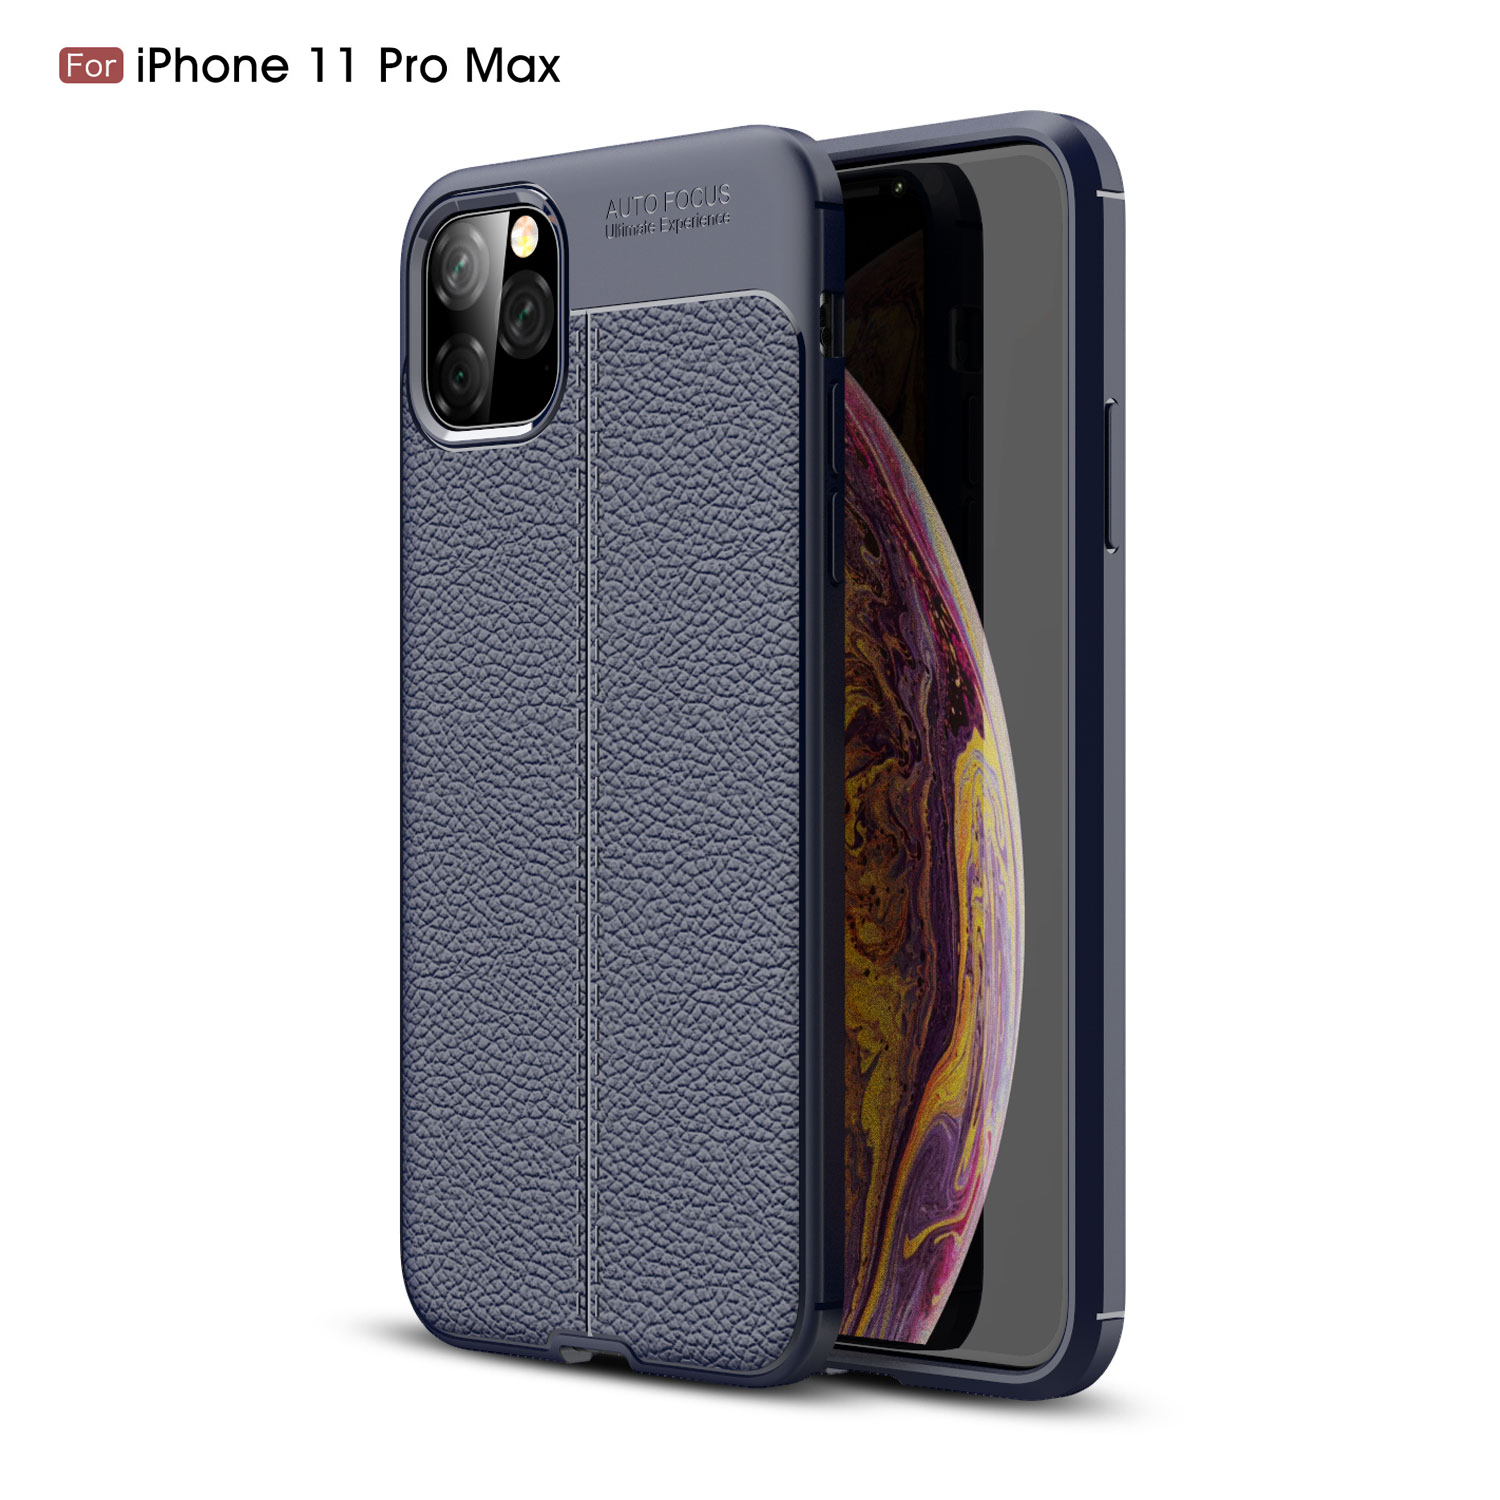 Ha7959c200b2a4531be46ffb71c858ee5j For iPhone 11 Pro Max Case 7 8 5S 6S Plus XR XS SE Apple Case Luxury Leather PU Soft Silicone Phone Back Cover For iPhone 11 Pro